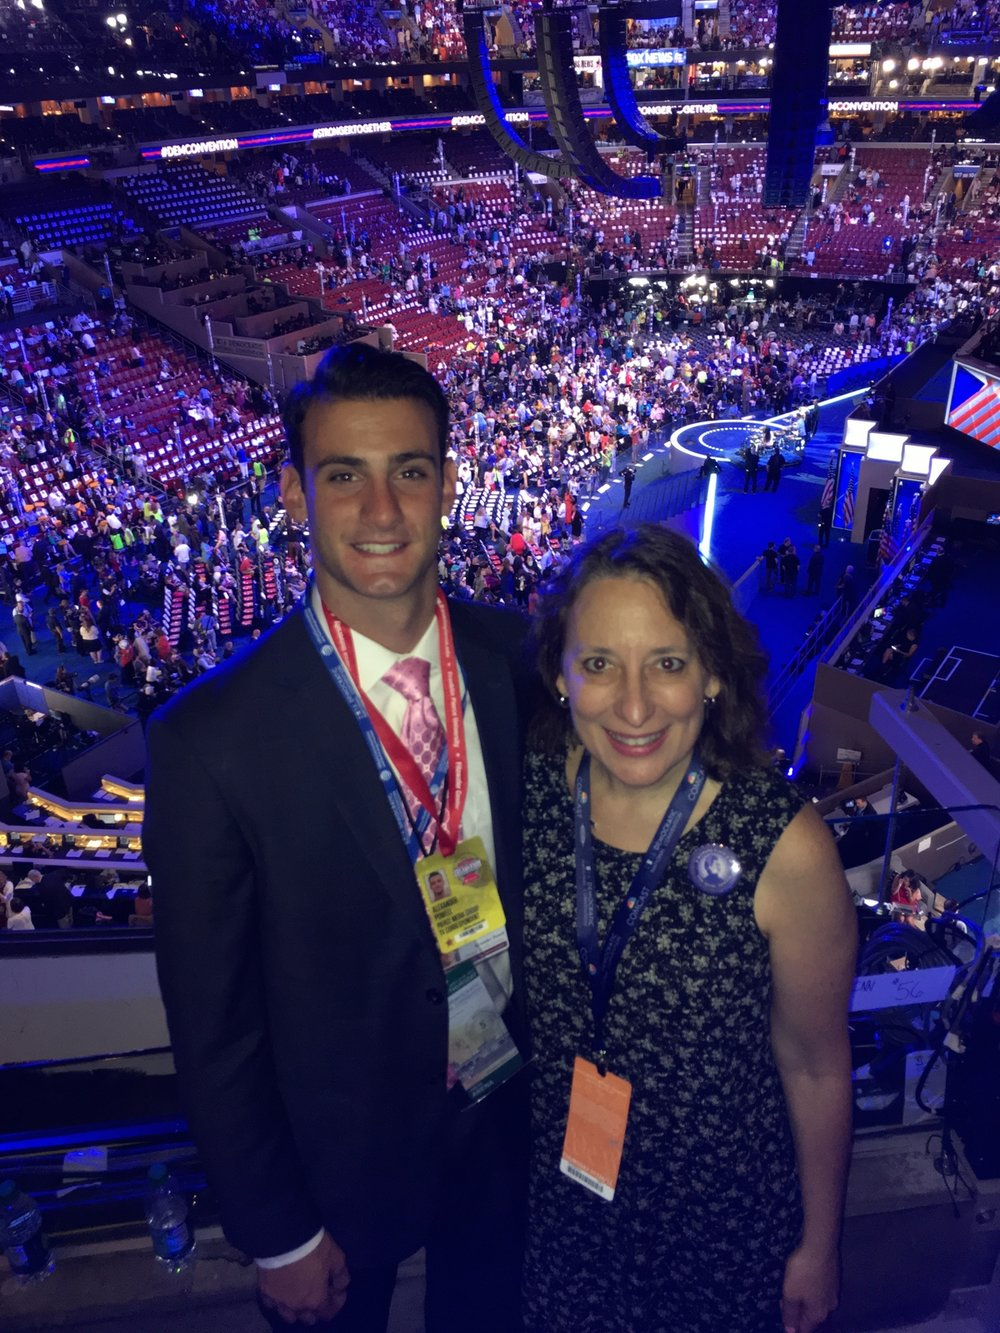 Rep. Ehrlich meets up with former intern Alex Powell at the 2016 Democratic Convention in Philadelphia